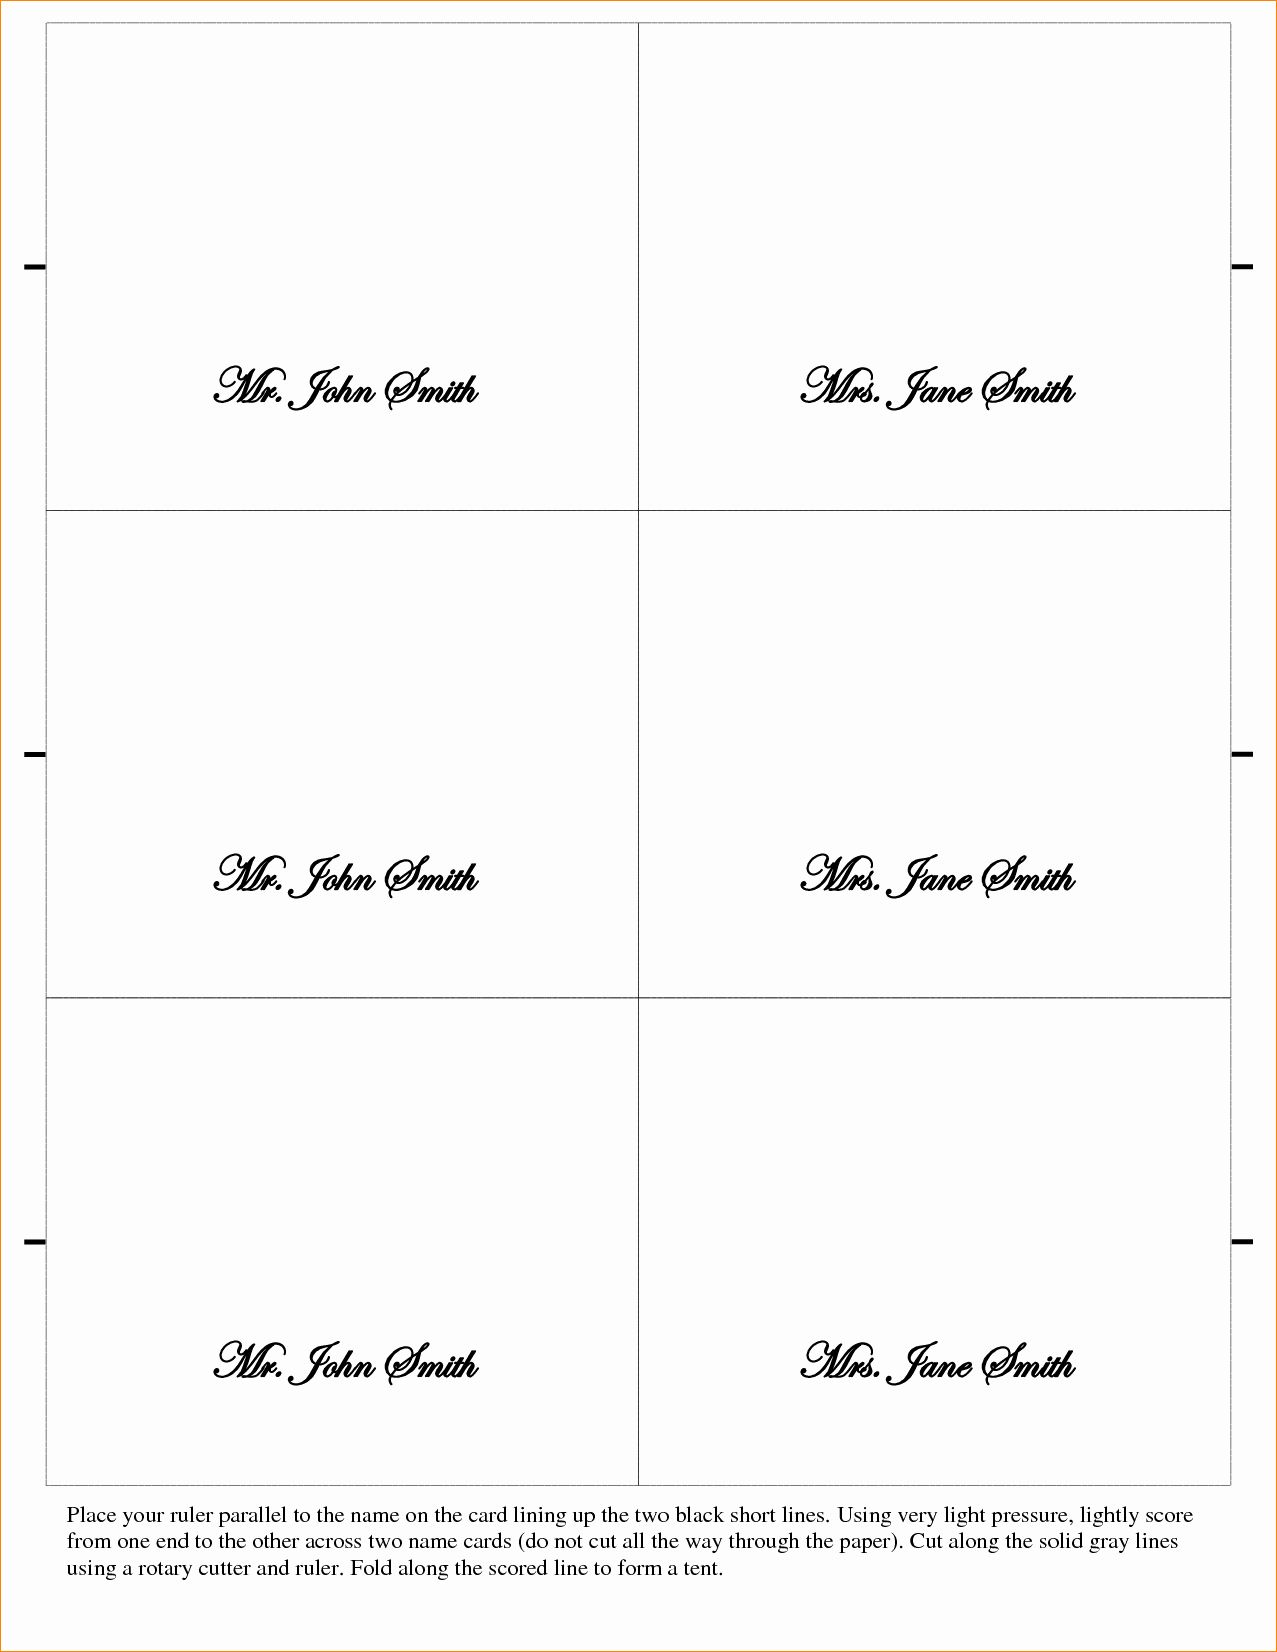 Place Cards Templates 6 Per Sheet Best Of 5 Placecard Template Place Card Template Place Card Template Word Card Templates Printable